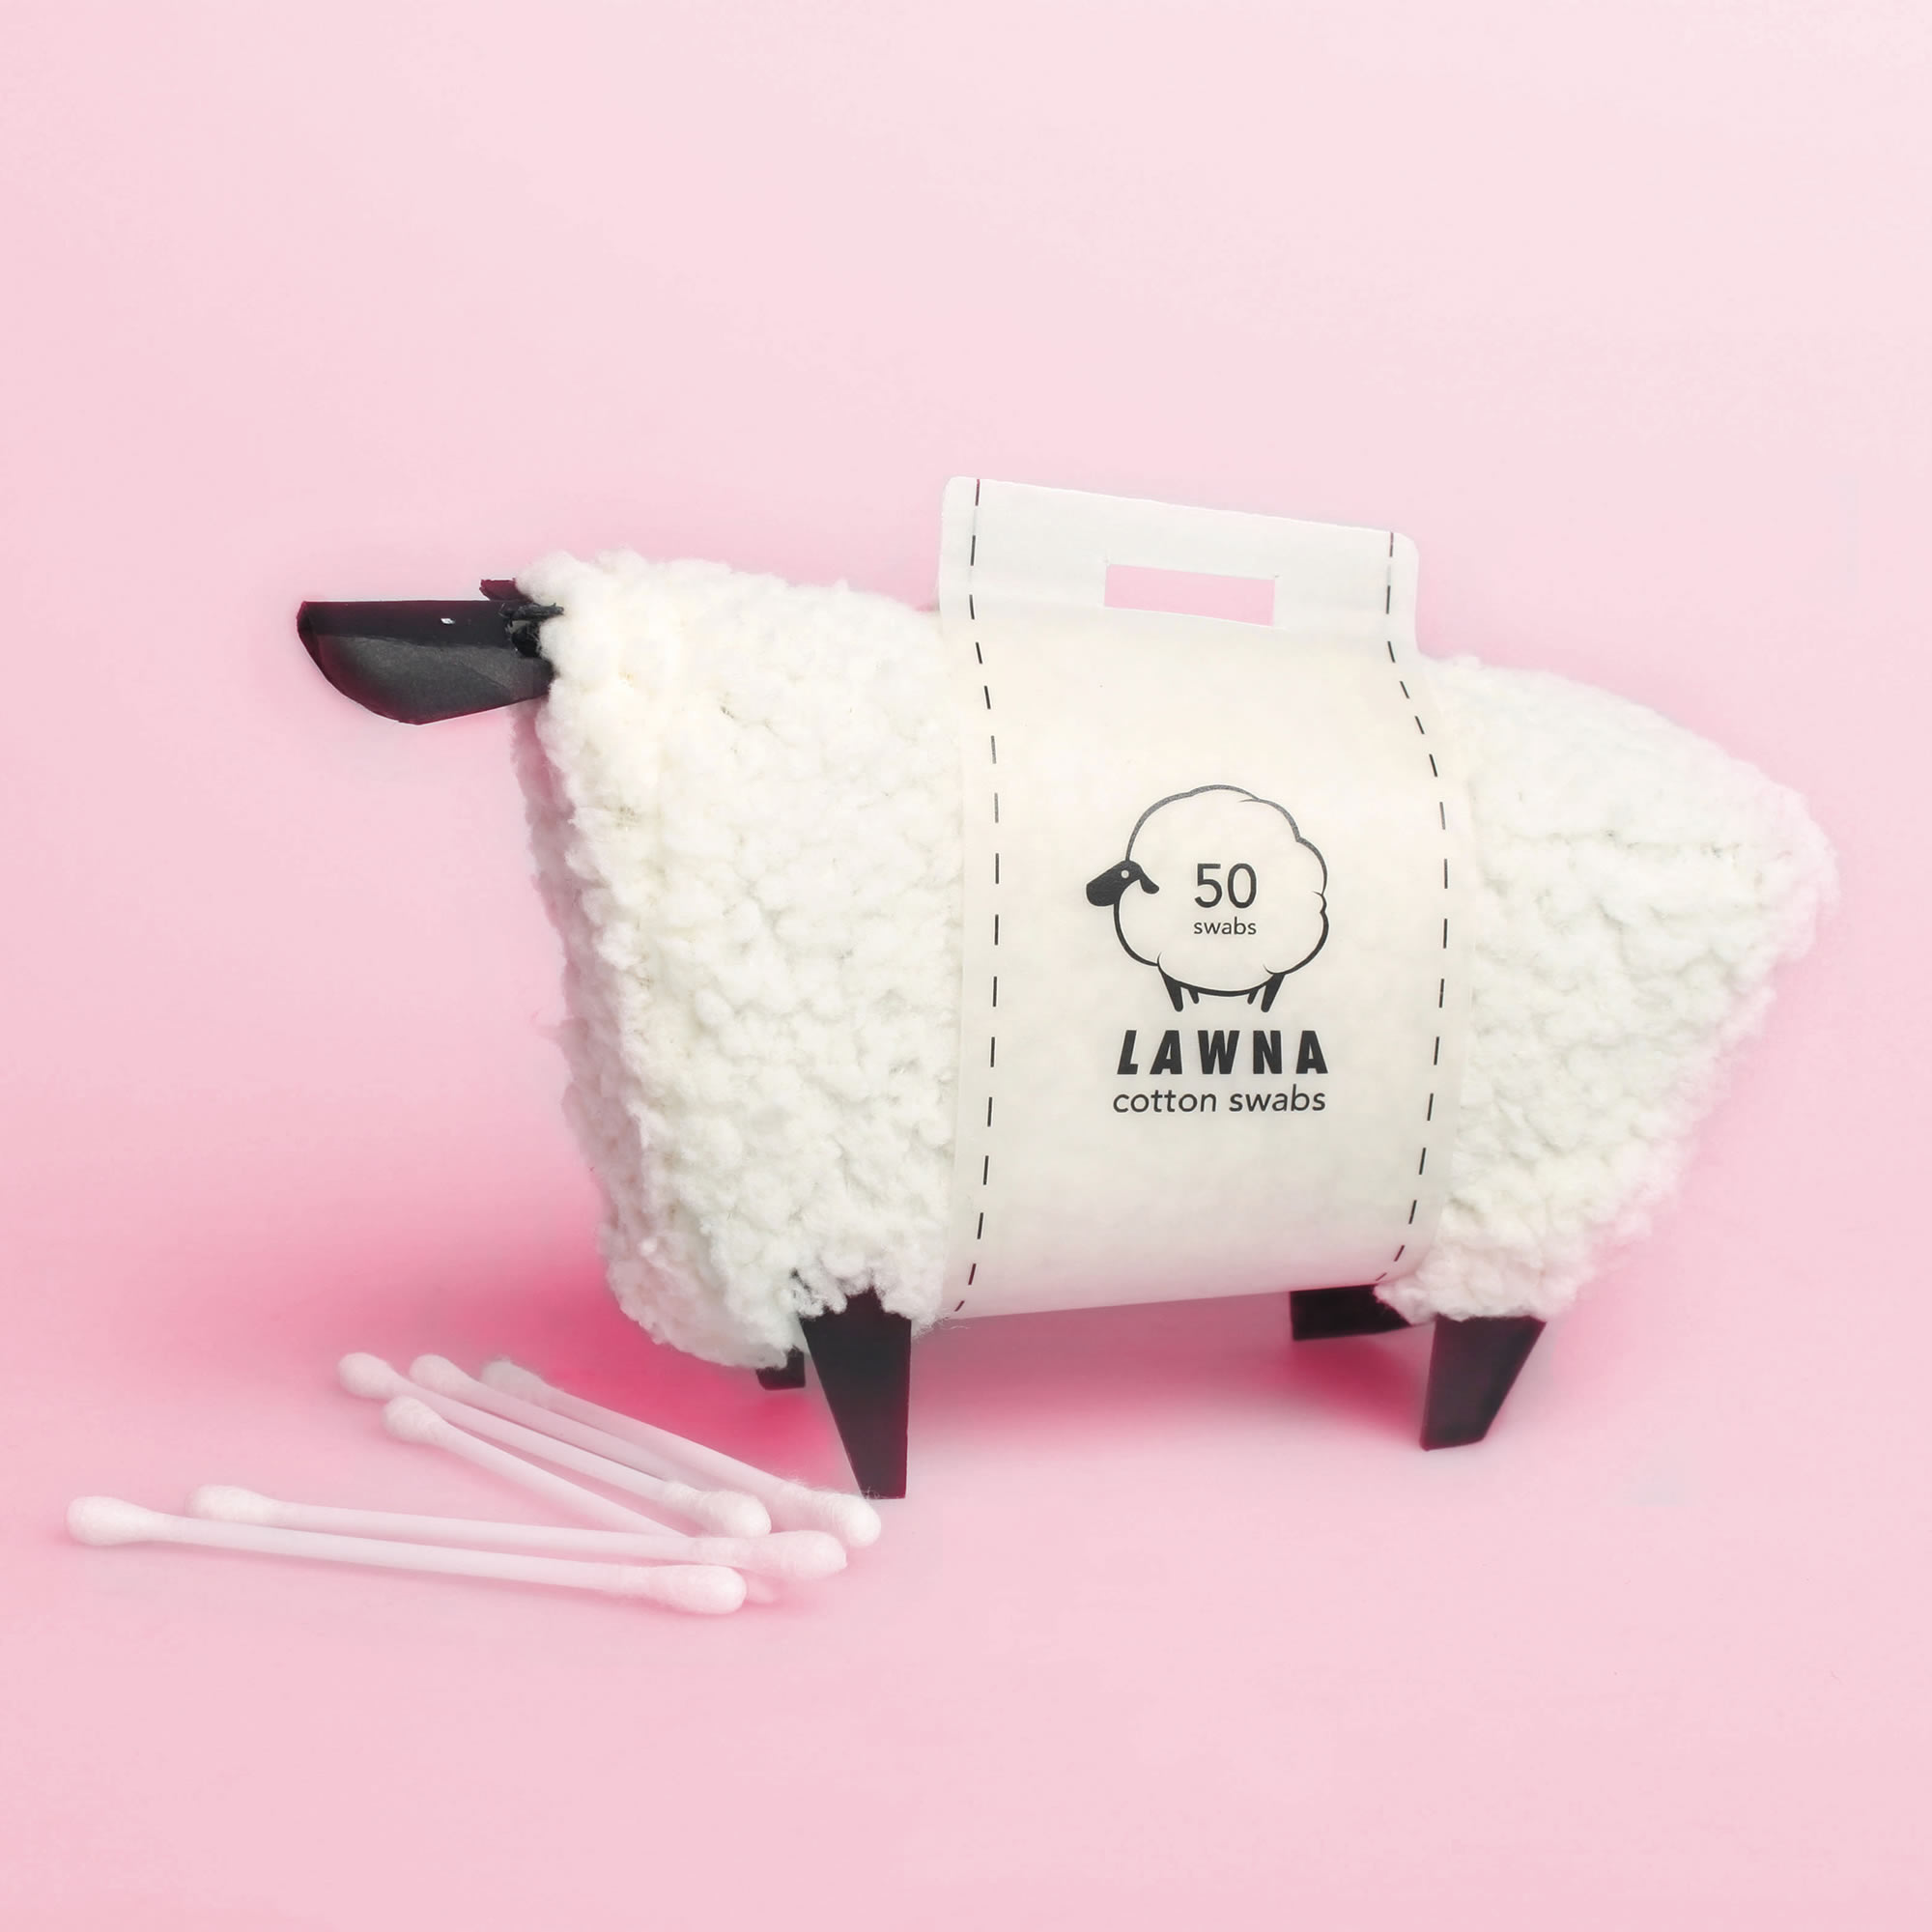 sheep dispensor with cotton swabs